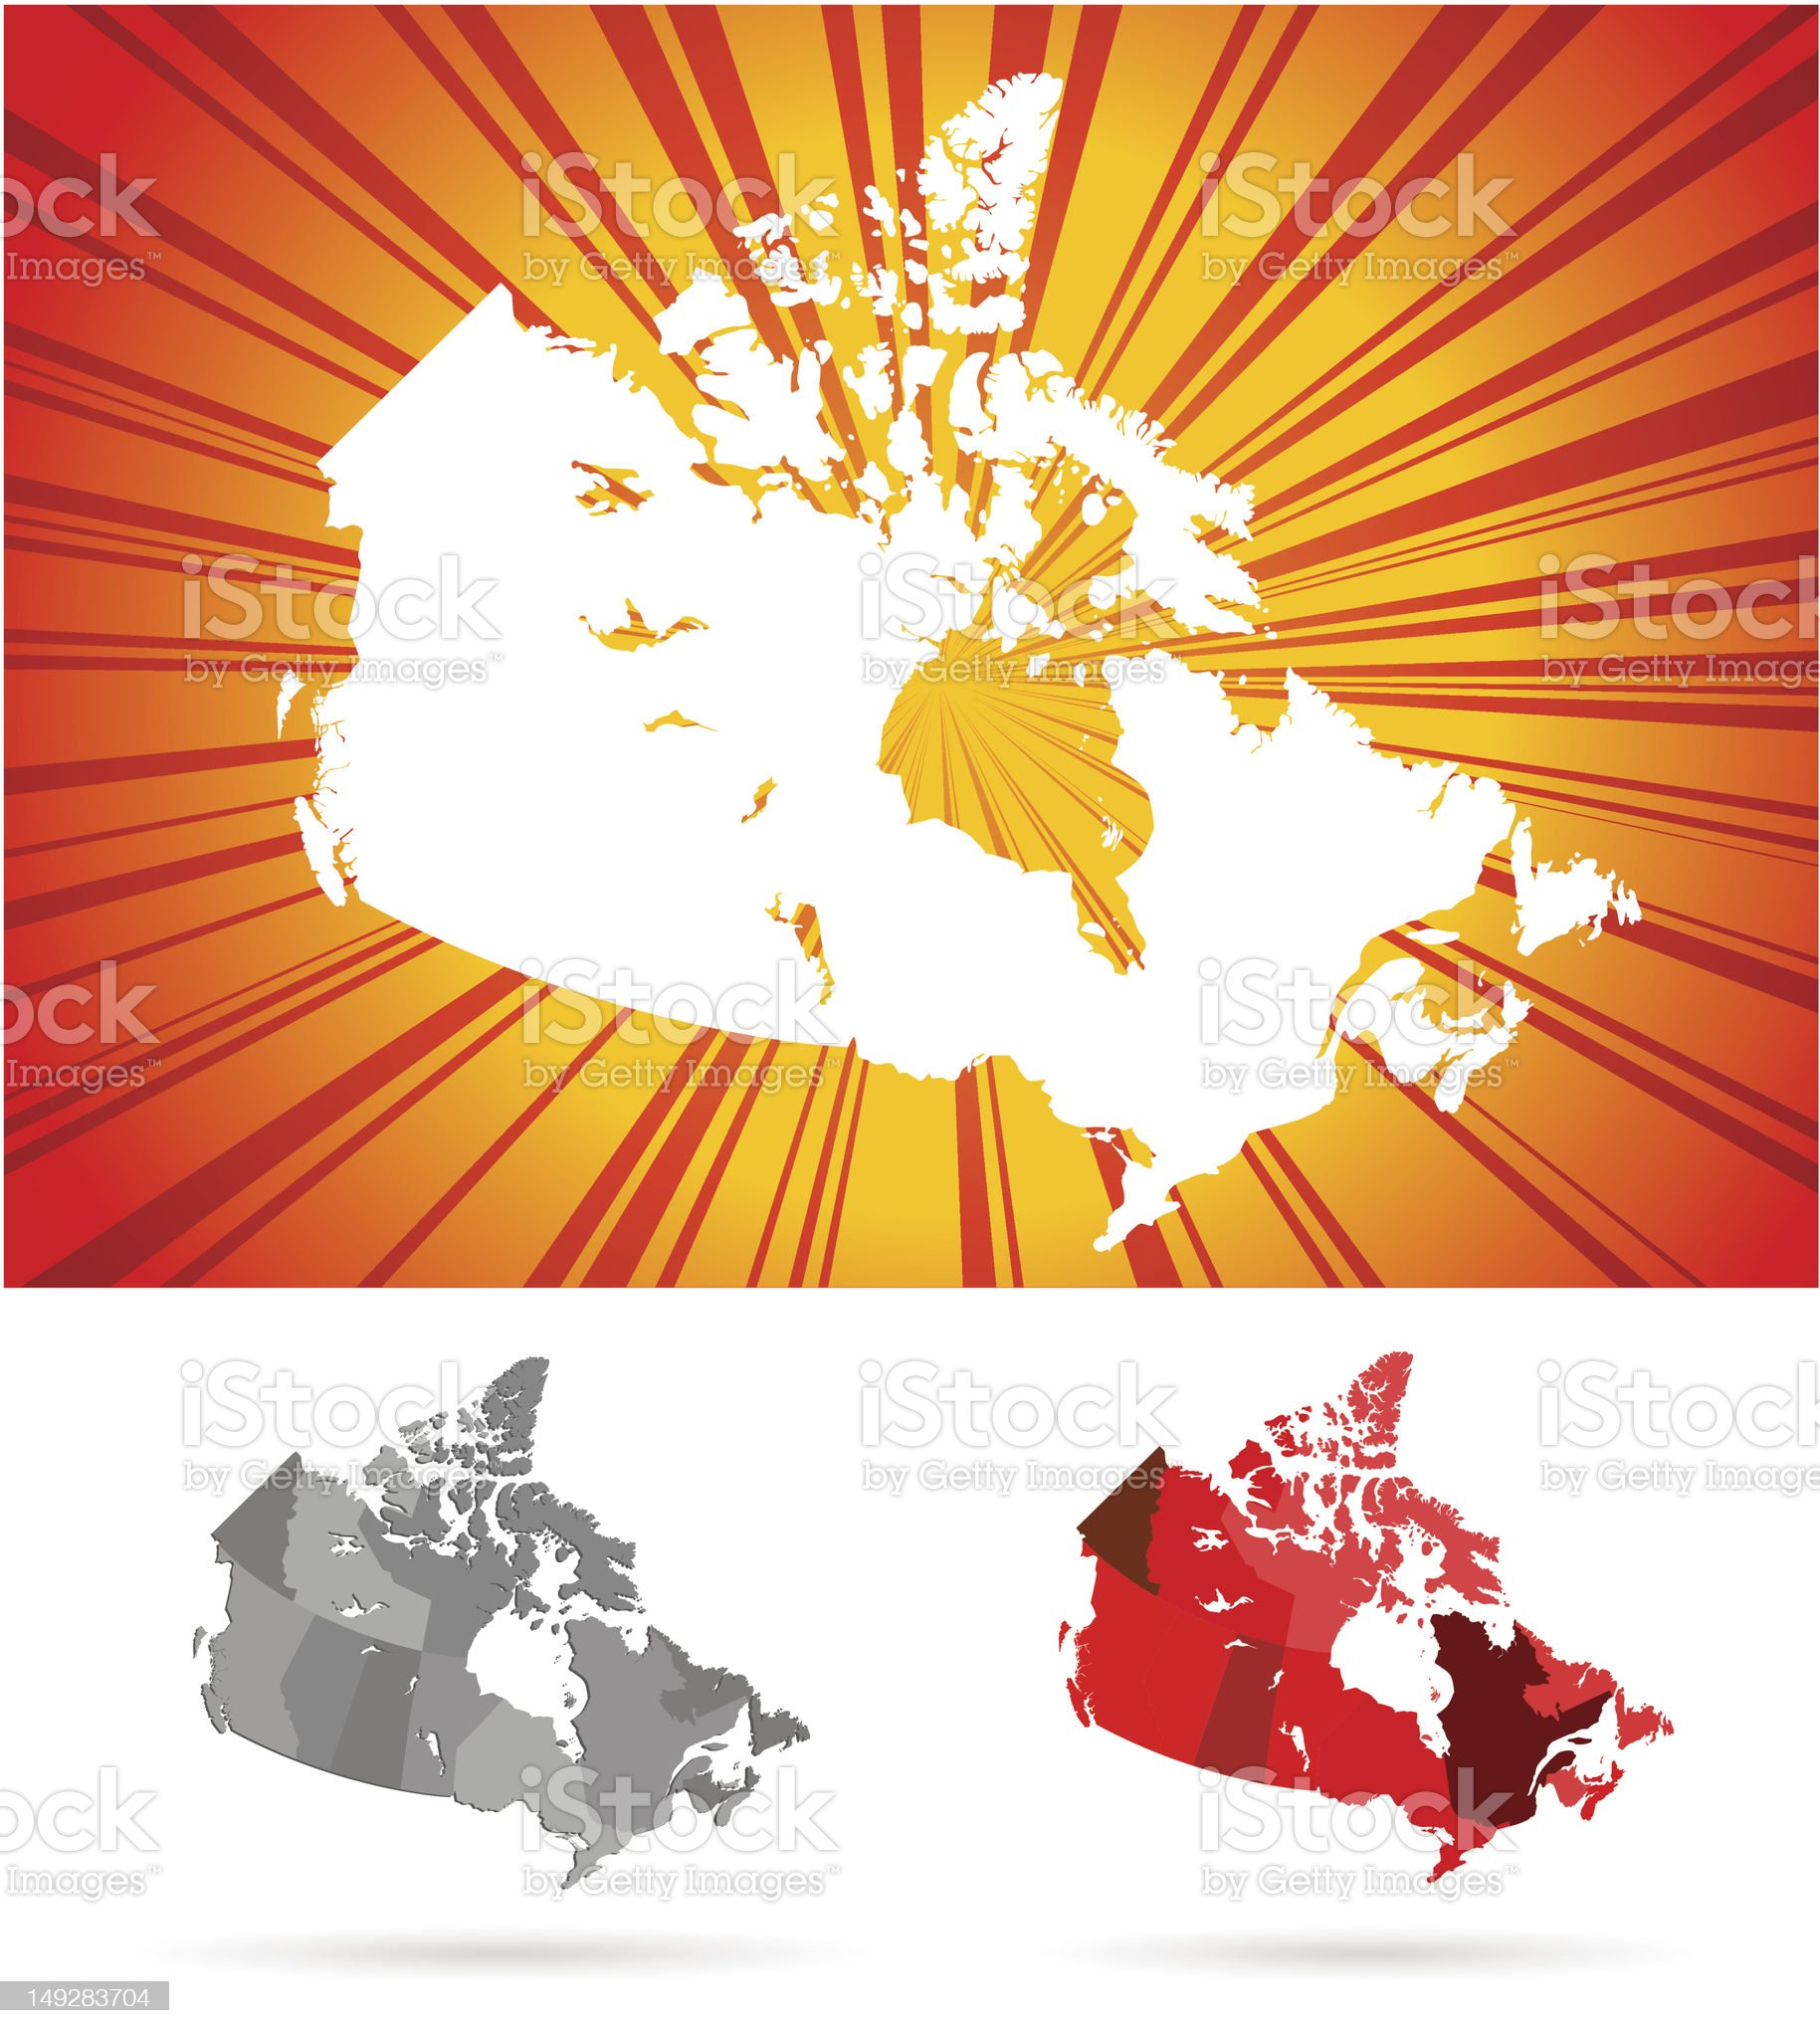 Canada map royalty-free stock vector art